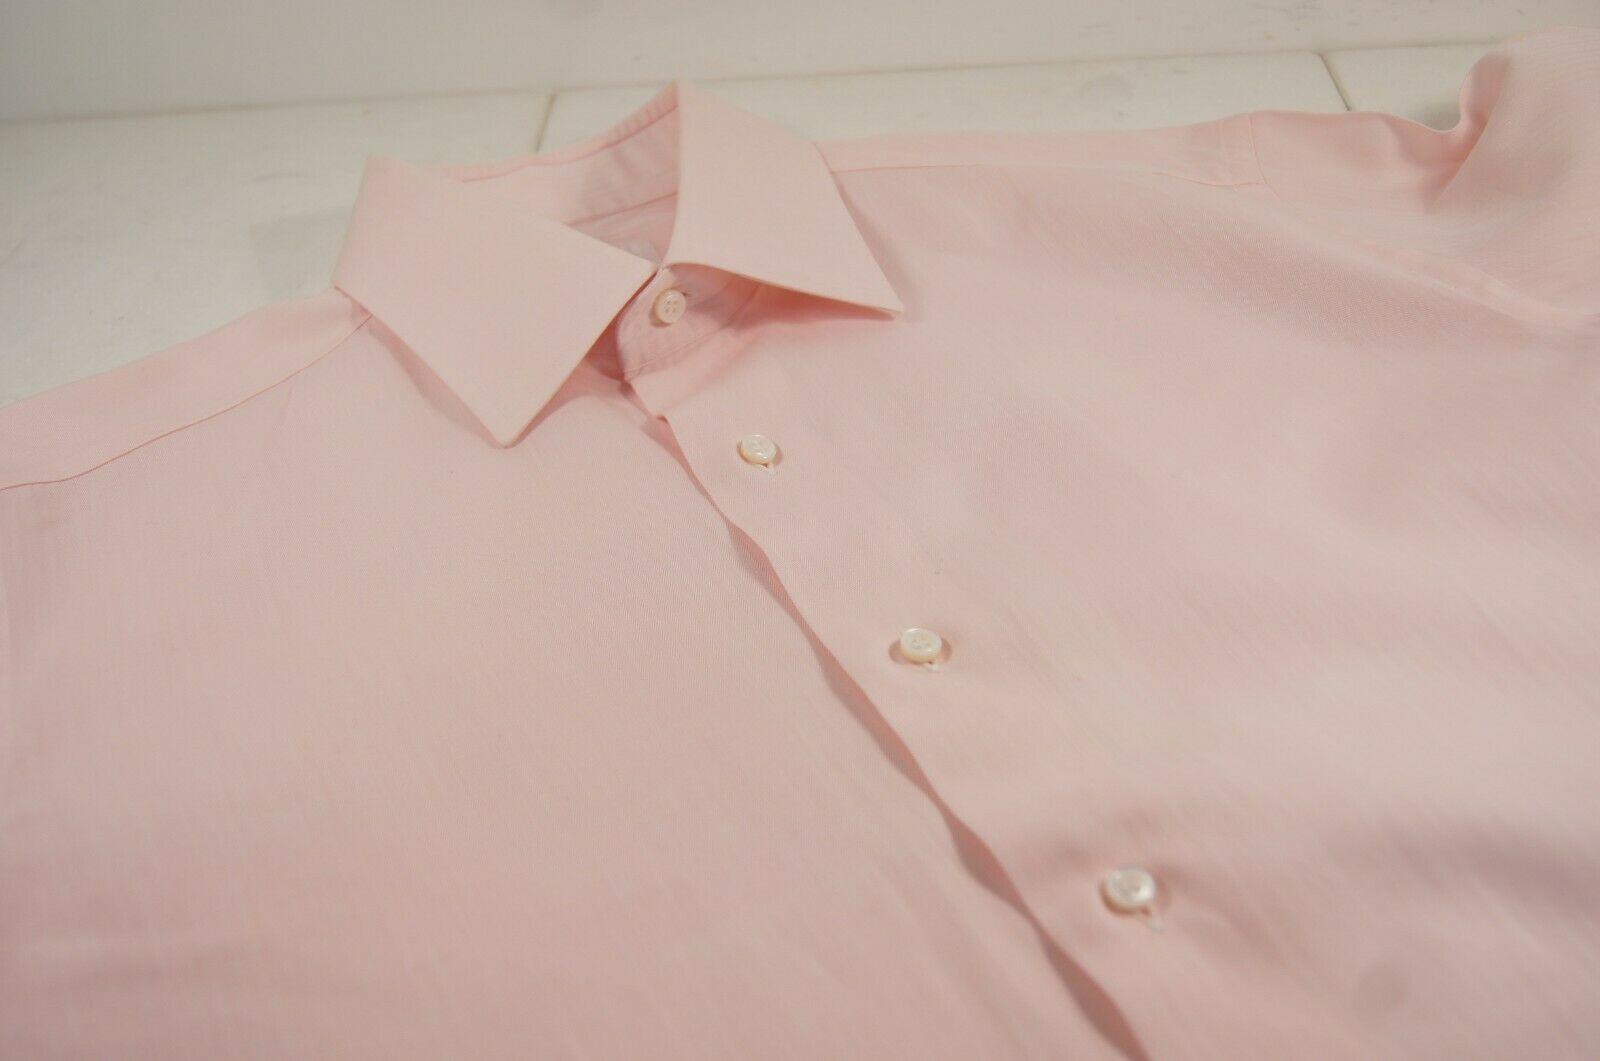 Brioni Pink French Cuff Dress Shirt Mint Condition size 16   41 - SL 34  -35